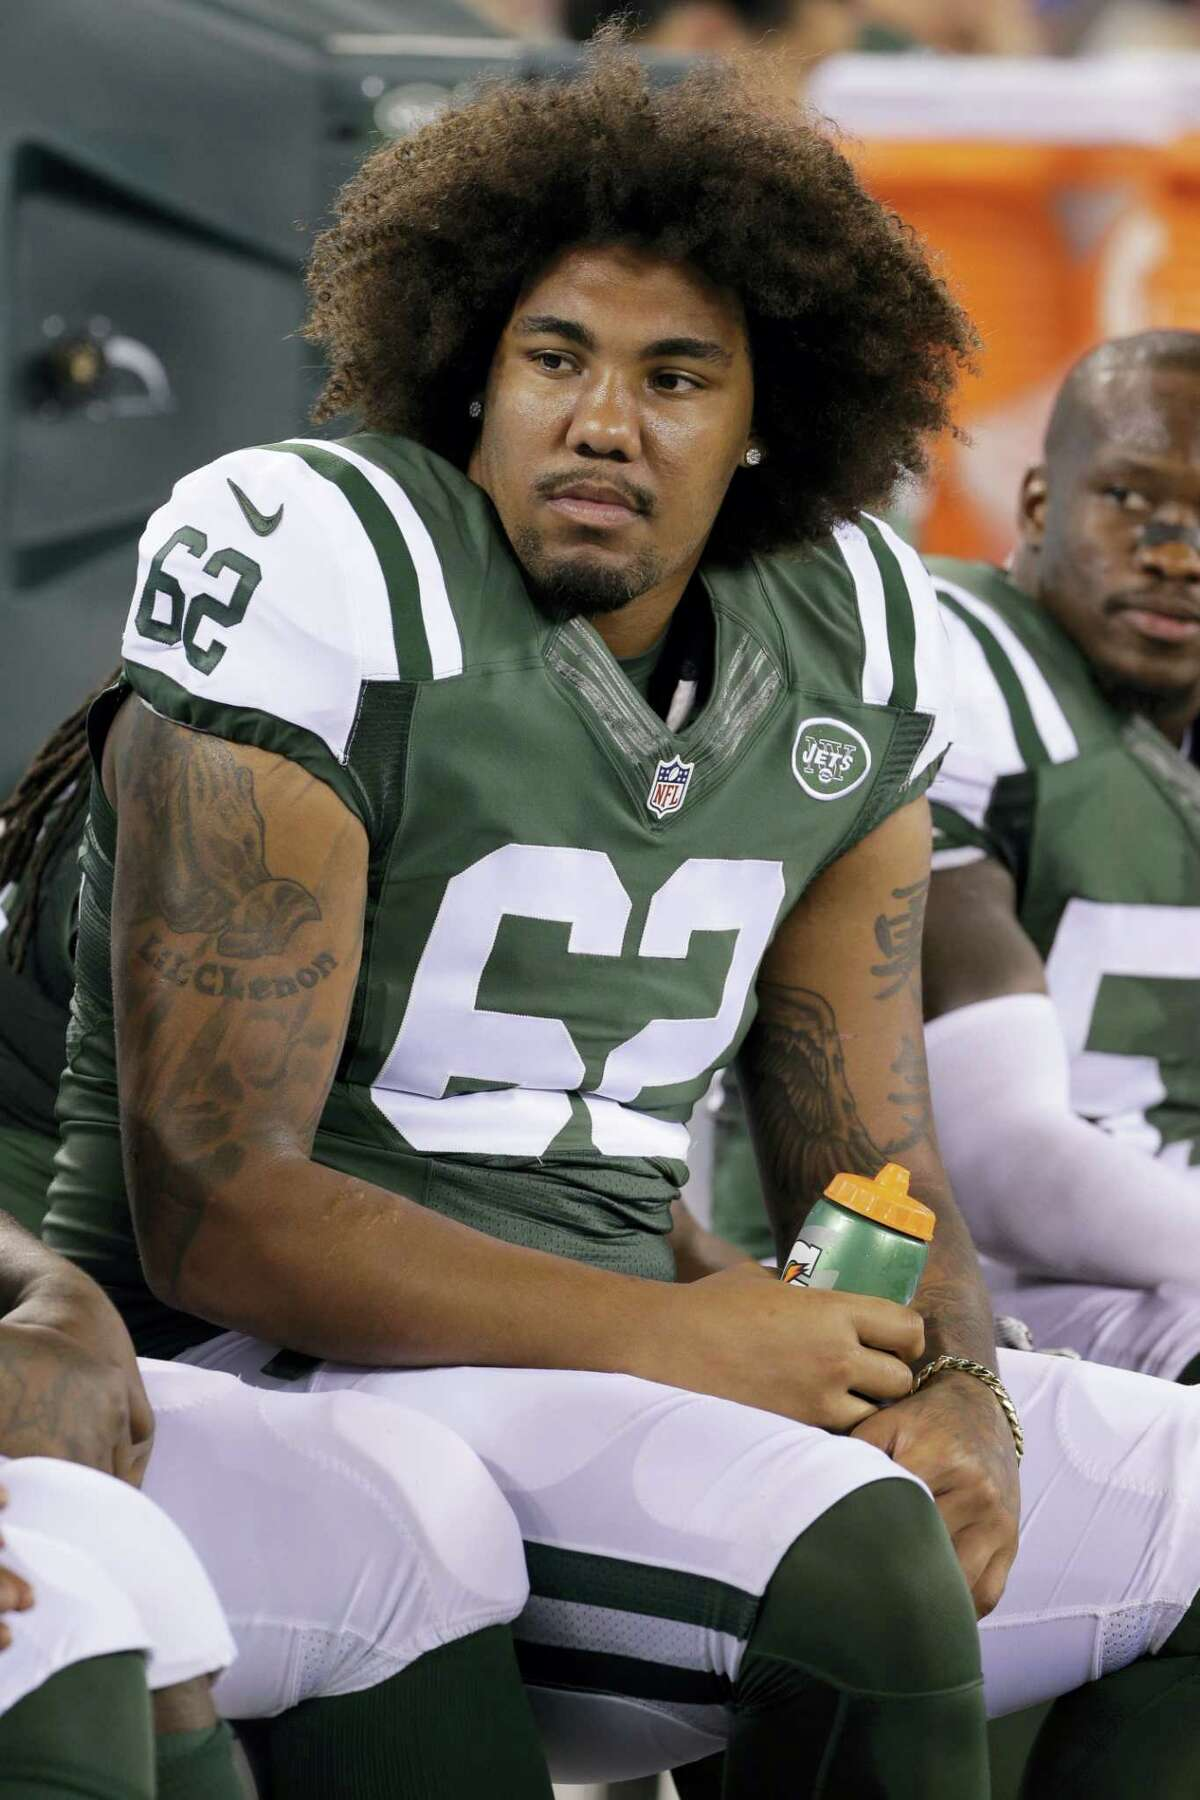 New York Jets defensive tackle Leonard Williams is trying to be proactive this season when taking care of his body.